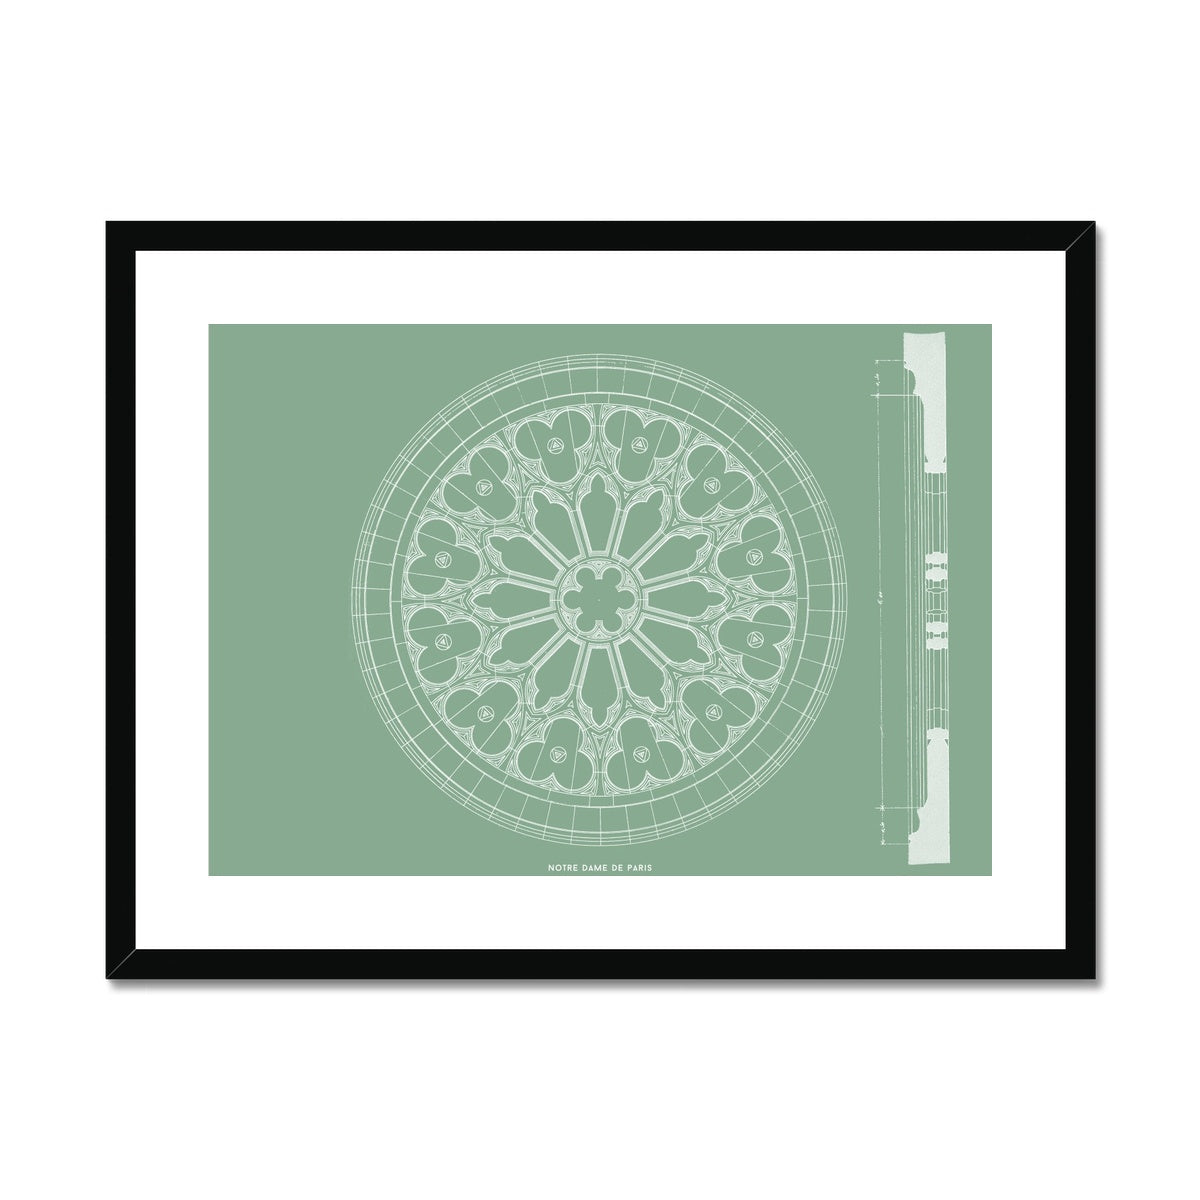 Notre Dame de Paris - Window Detail - Green -  Framed & Mounted Print